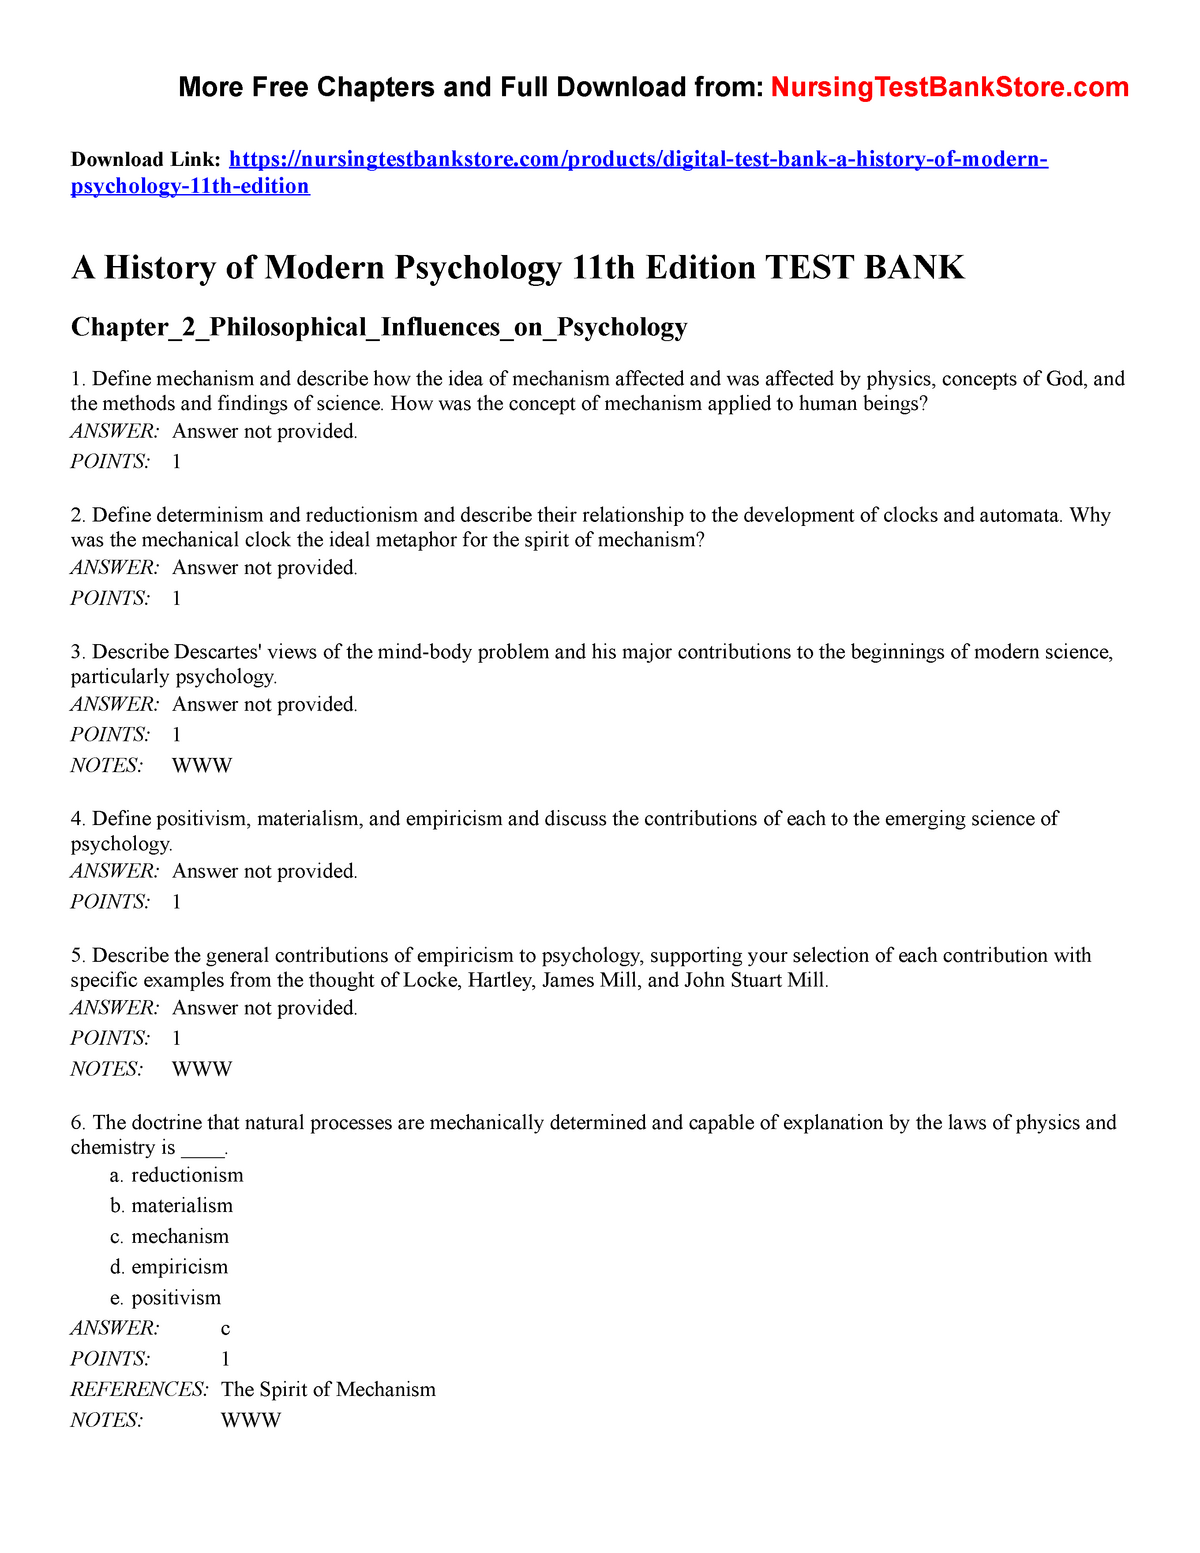 A History of Modern Psychology 11th Edition Test Bank - PSYC 5400